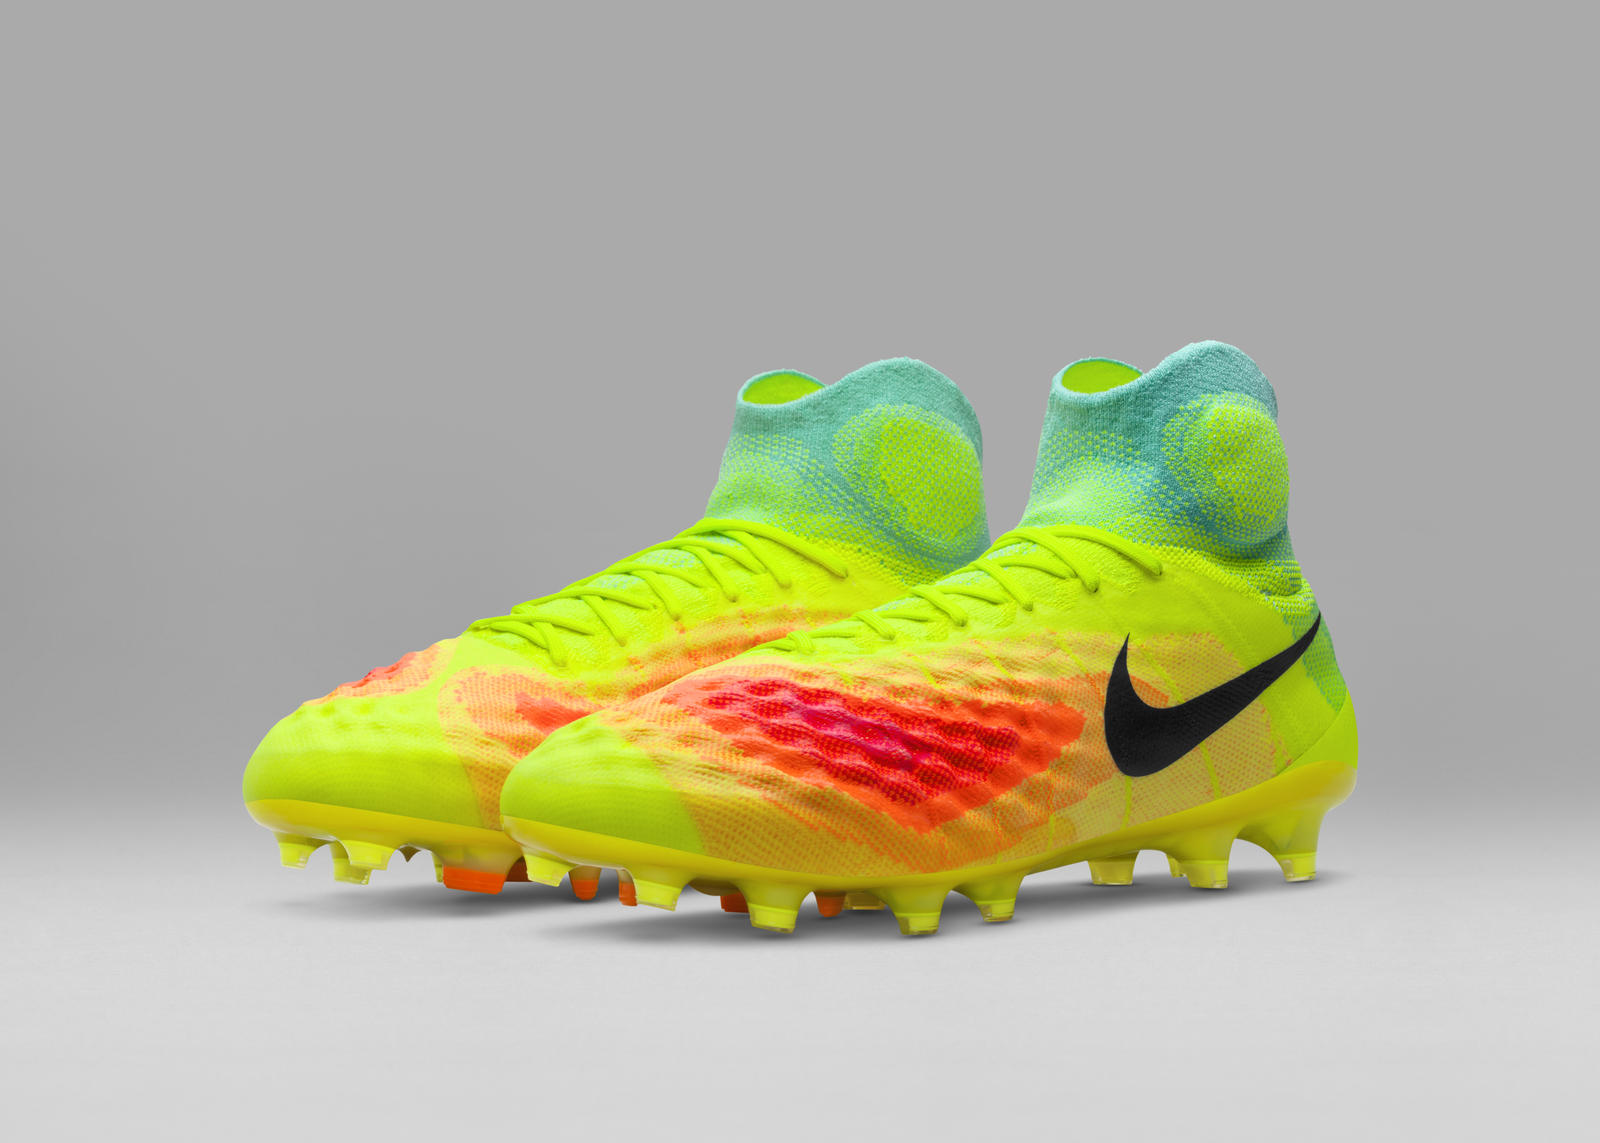 Nike redesigns football boot to make it more intuitive – Design Week 8f514ff84a85